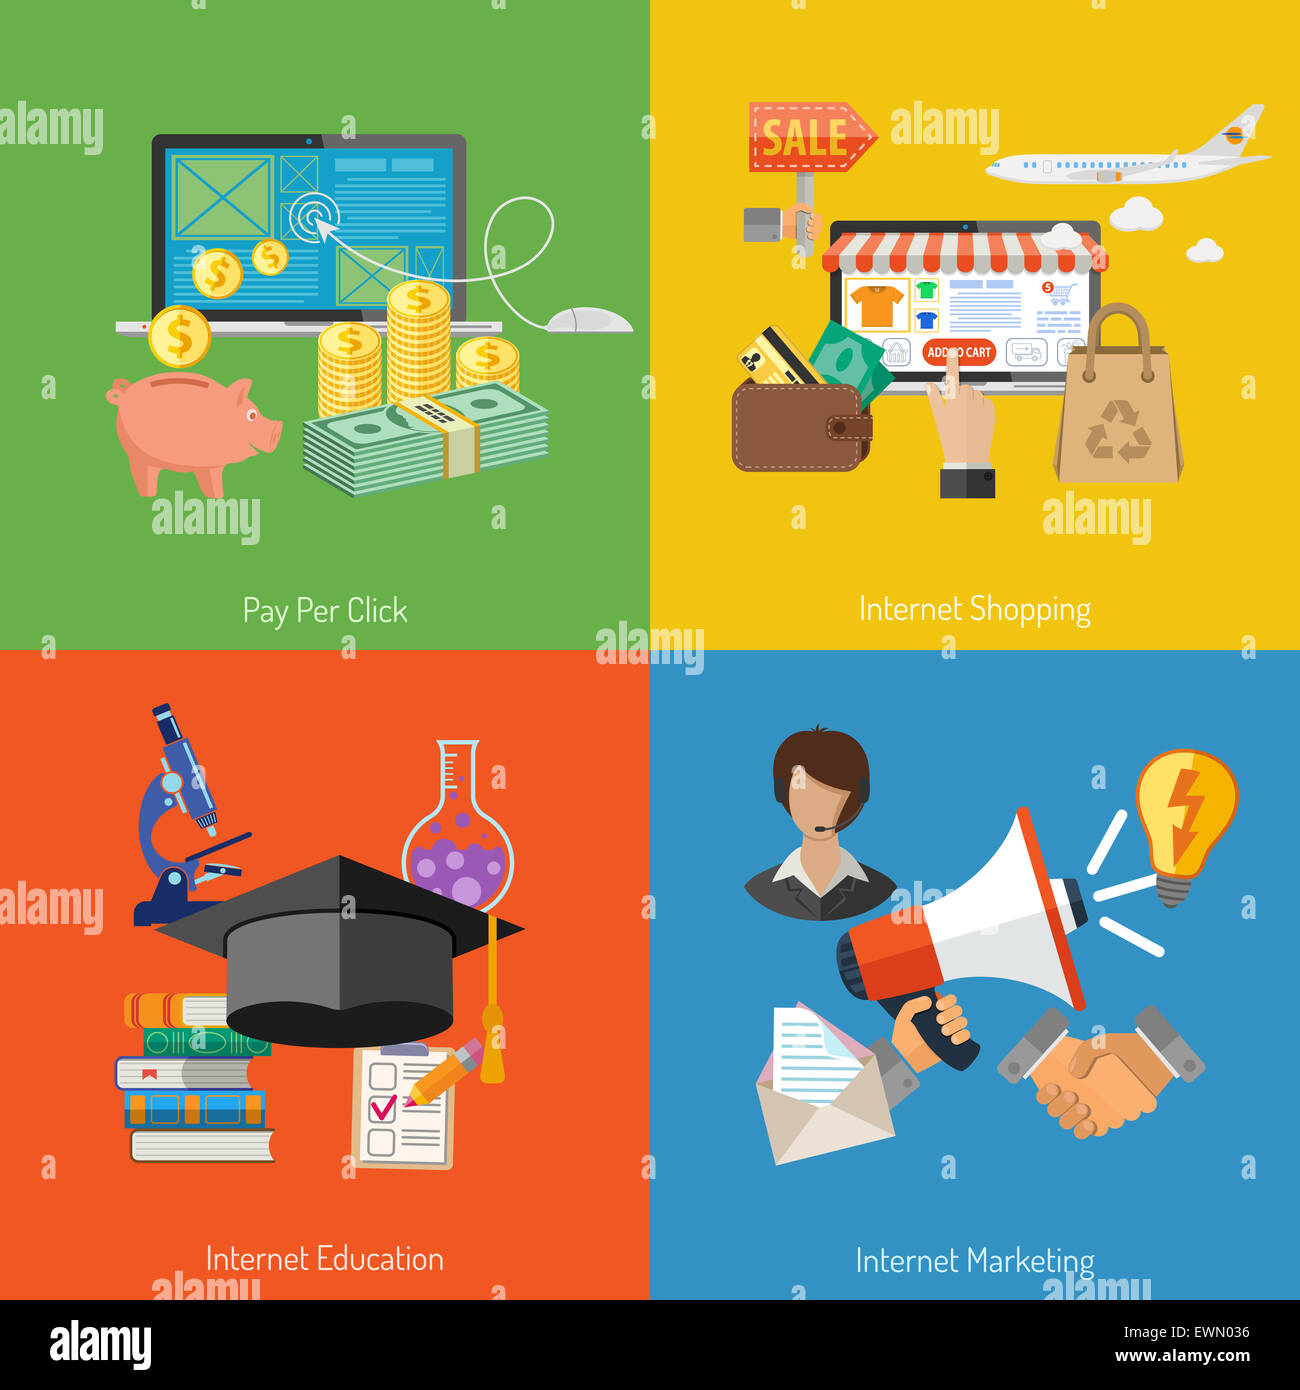 Concepts for Online Internet Technology - Education, Shopping, Marketing and Pay per Click Flat Icons. Can be used - Stock Image